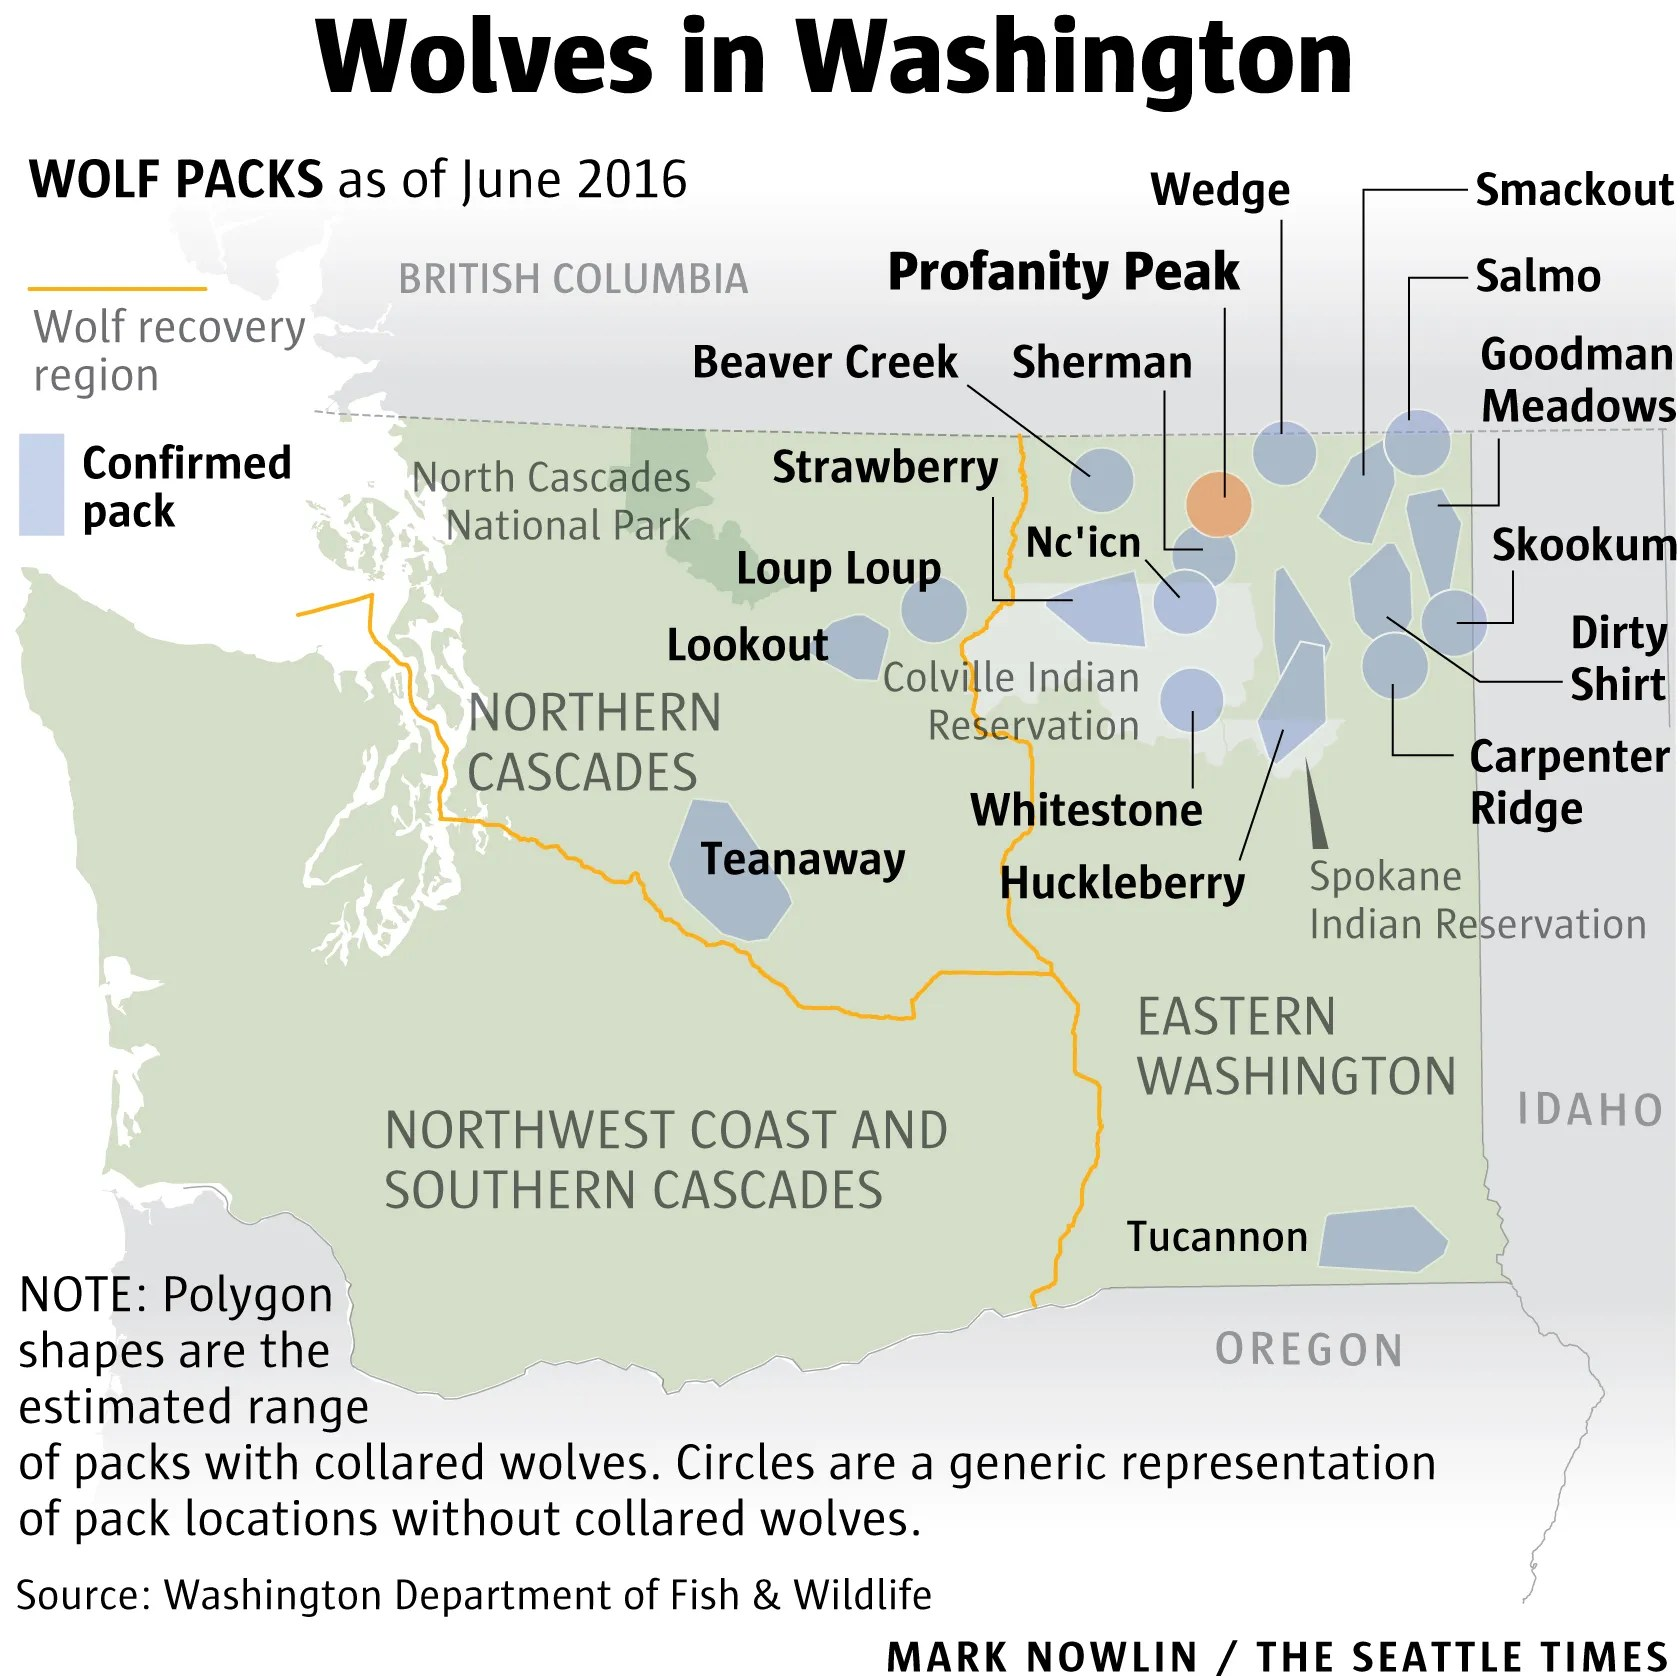 Washington Department of Fish & Wildlife authorized fieldstaff to kill the Profanity Peak wolf pack to prevent more attacks on cattle in the rangelands between Republic and Kettle Falls.